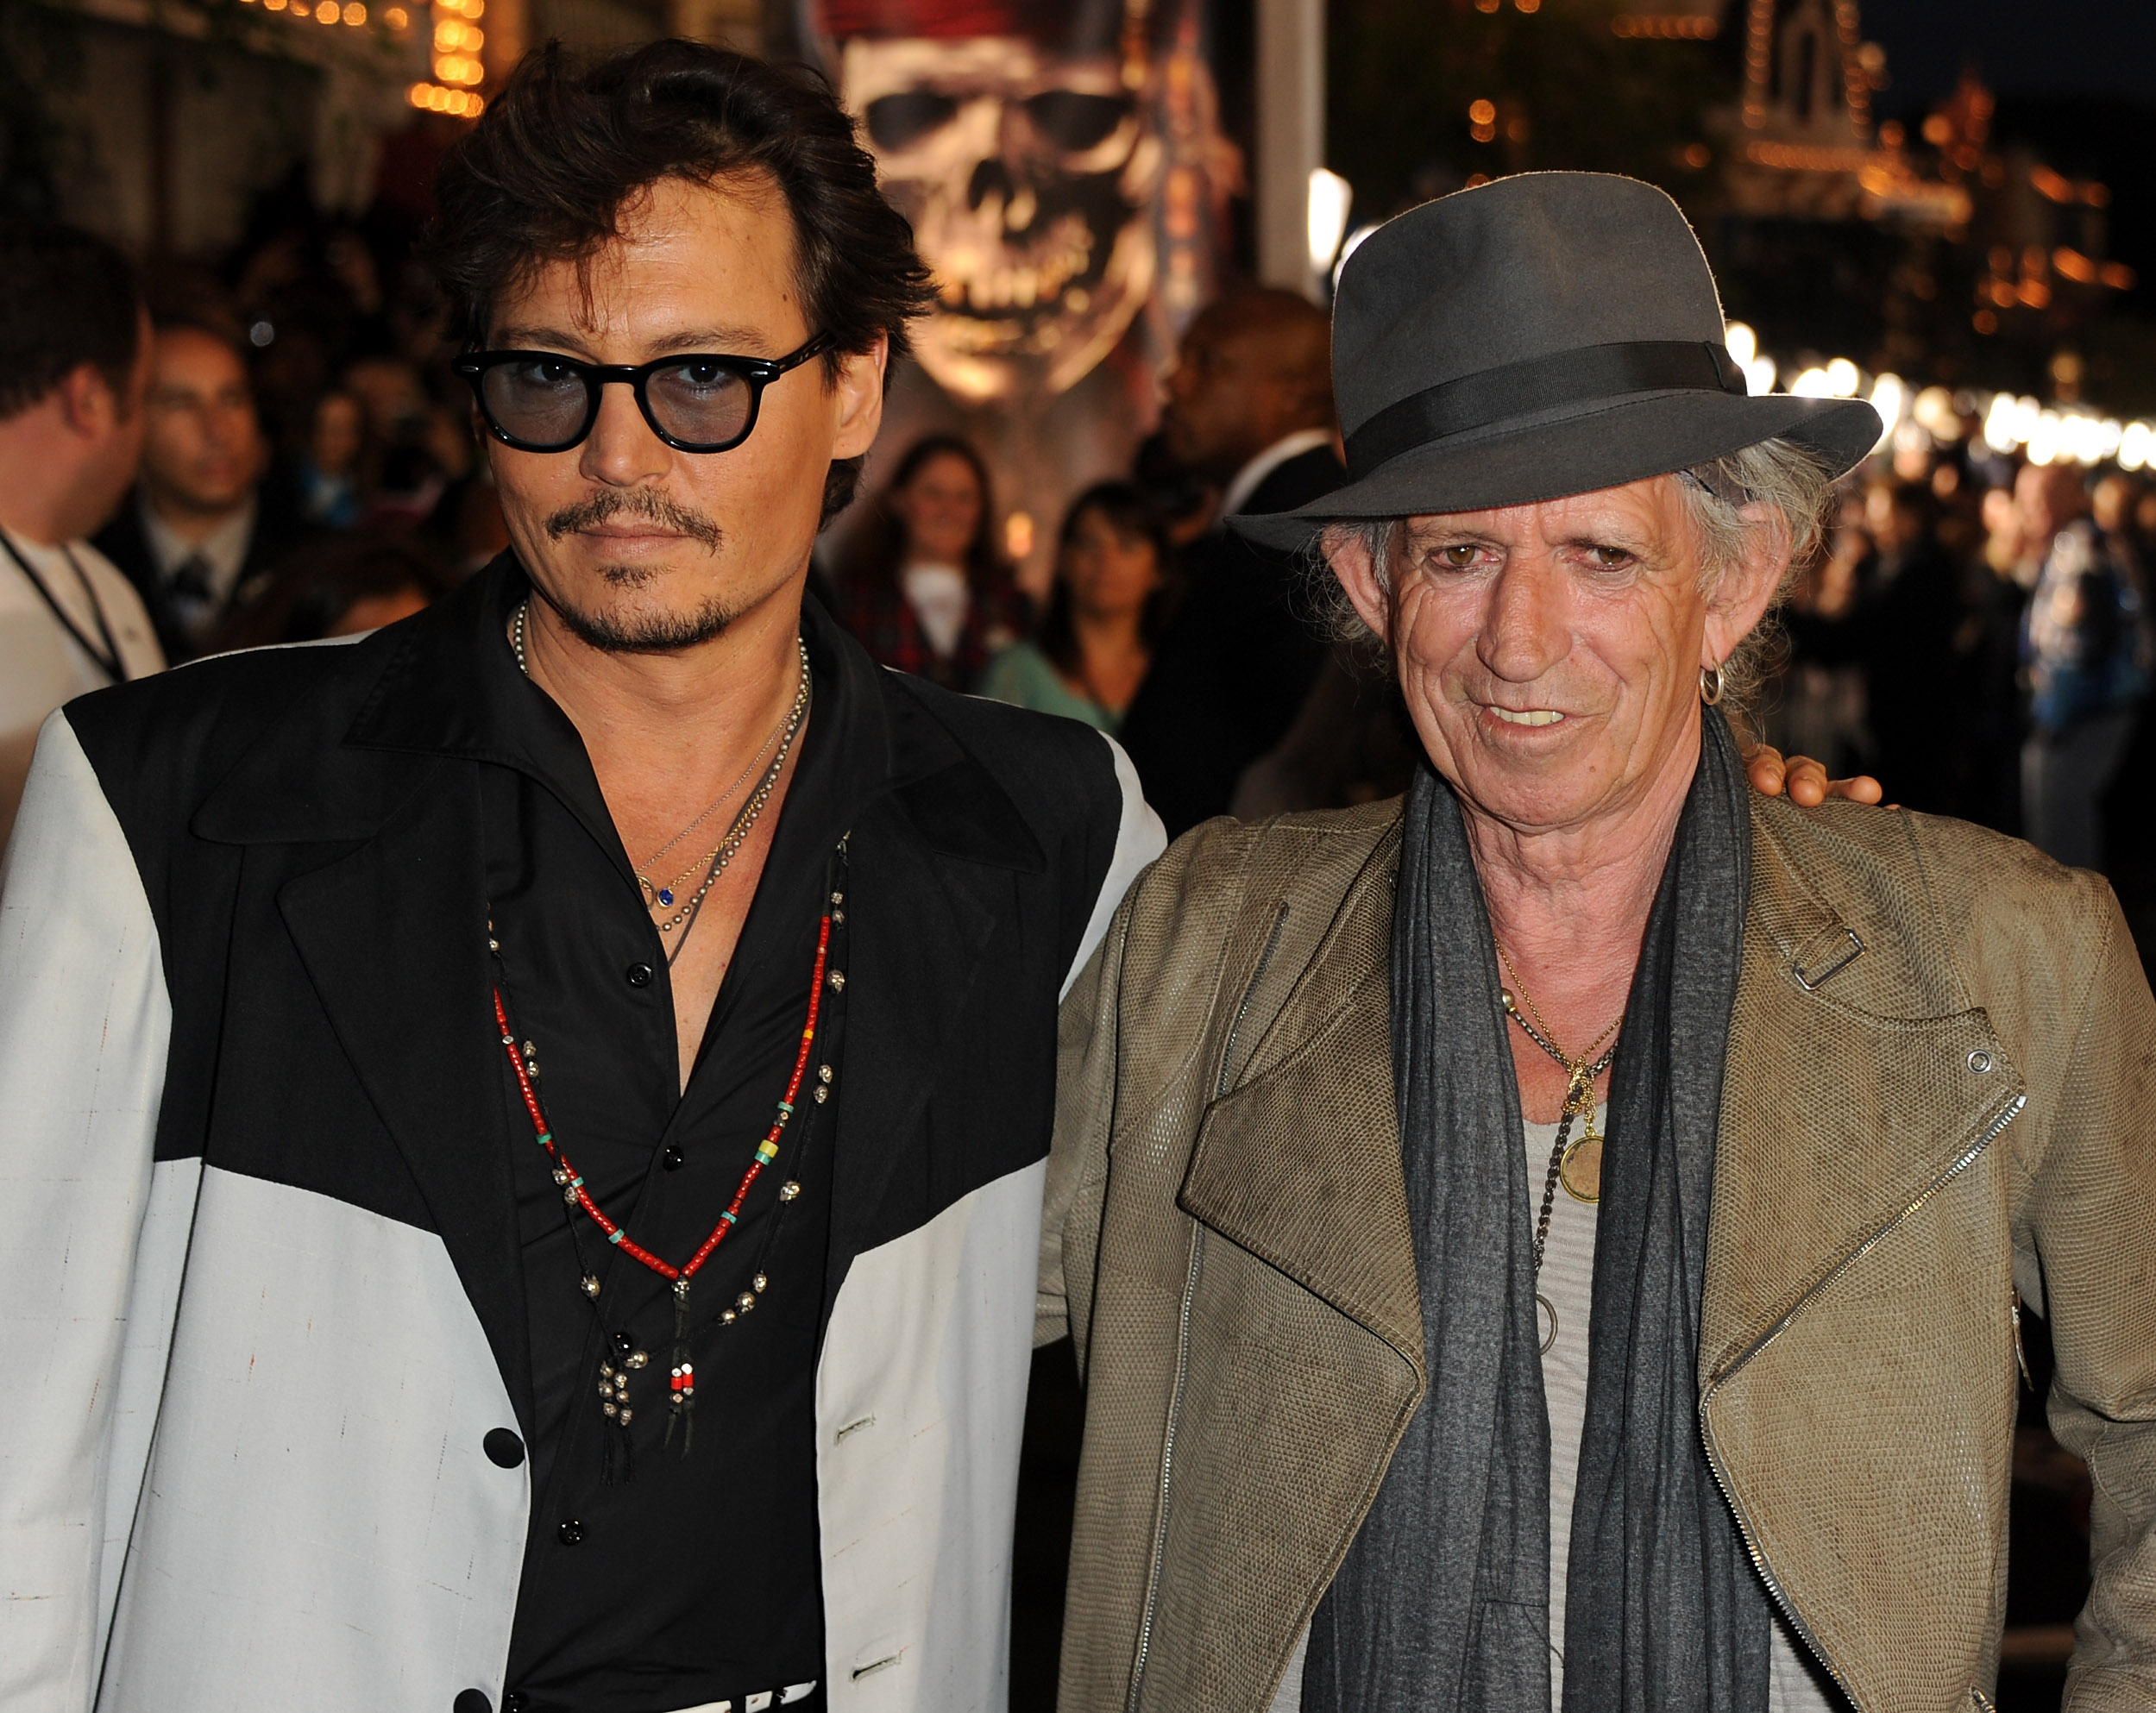 """ANAHEIM, CA - MAY 07:  Actor Johnny Depp (L) and actor/musician Keith Richards arrive at premiere of Walt Disney Pictures' """"Pirates of the Caribbean: On Stranger Tides"""" held at Disneyland on May 7, 2011 in Anaheim, California. Proceeds from the world premiere of Walt Disney Pictures' """"Pirates Of The Caribbean: On Stranger Tides"""" will benefit the Boys & Girls Clubs of America.  (Photo by Kevin Winter/Getty Images)"""